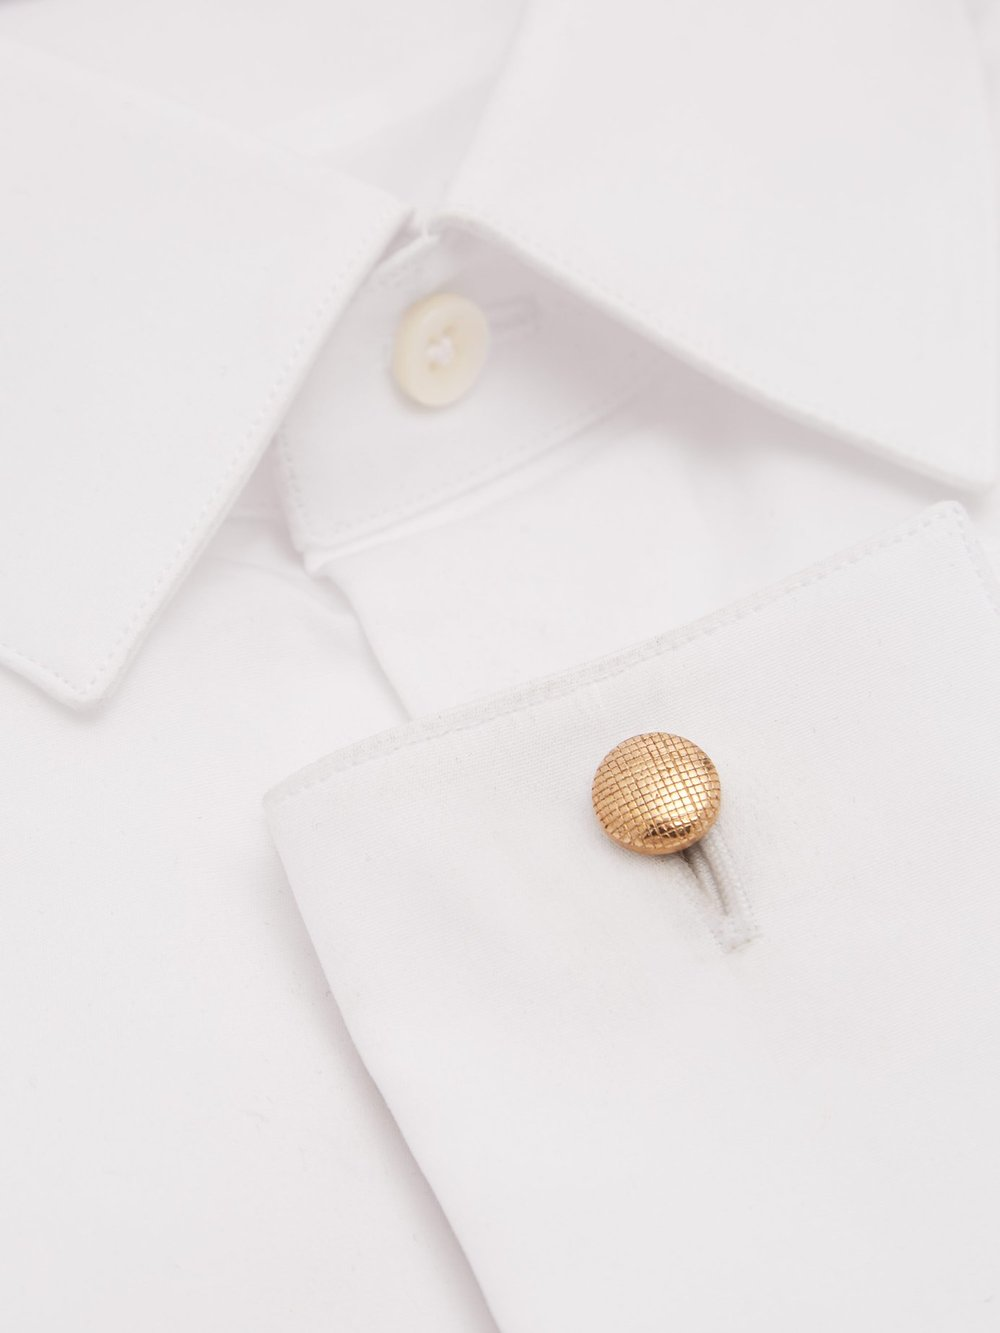 Bronze cufflinks - SAMUEL GASSMANN£167These beautiful cufflinks are embossed with a grid pattern symbolising the frame of a fabric. Clever isn't it! They are handmade in Paris and have the label's signature SG logo embossed on the bar. Buy them here